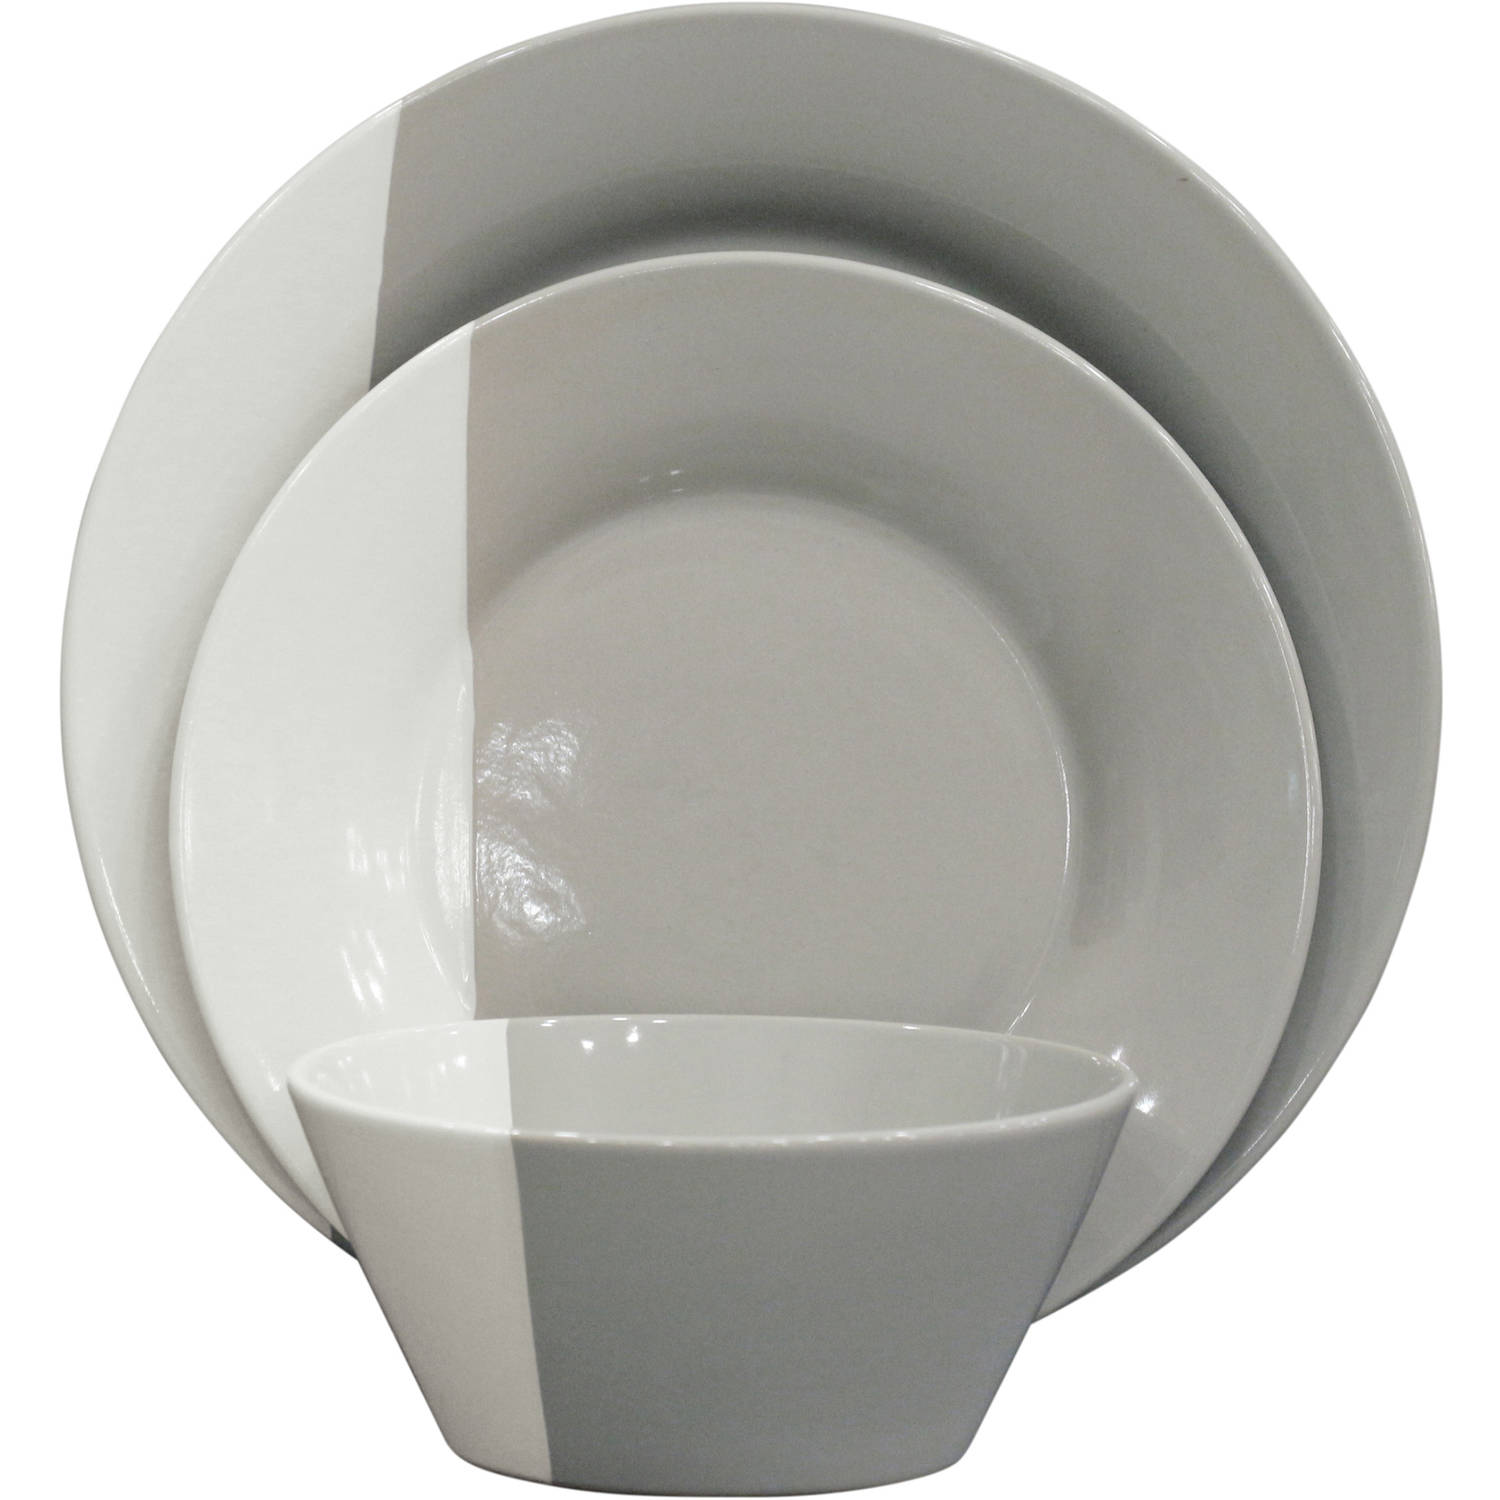 Better Homes and Gardens Color Dipped 12-Piece Dinnerware Set Grey - Walmart.com  sc 1 st  Walmart : white and black dinnerware - pezcame.com